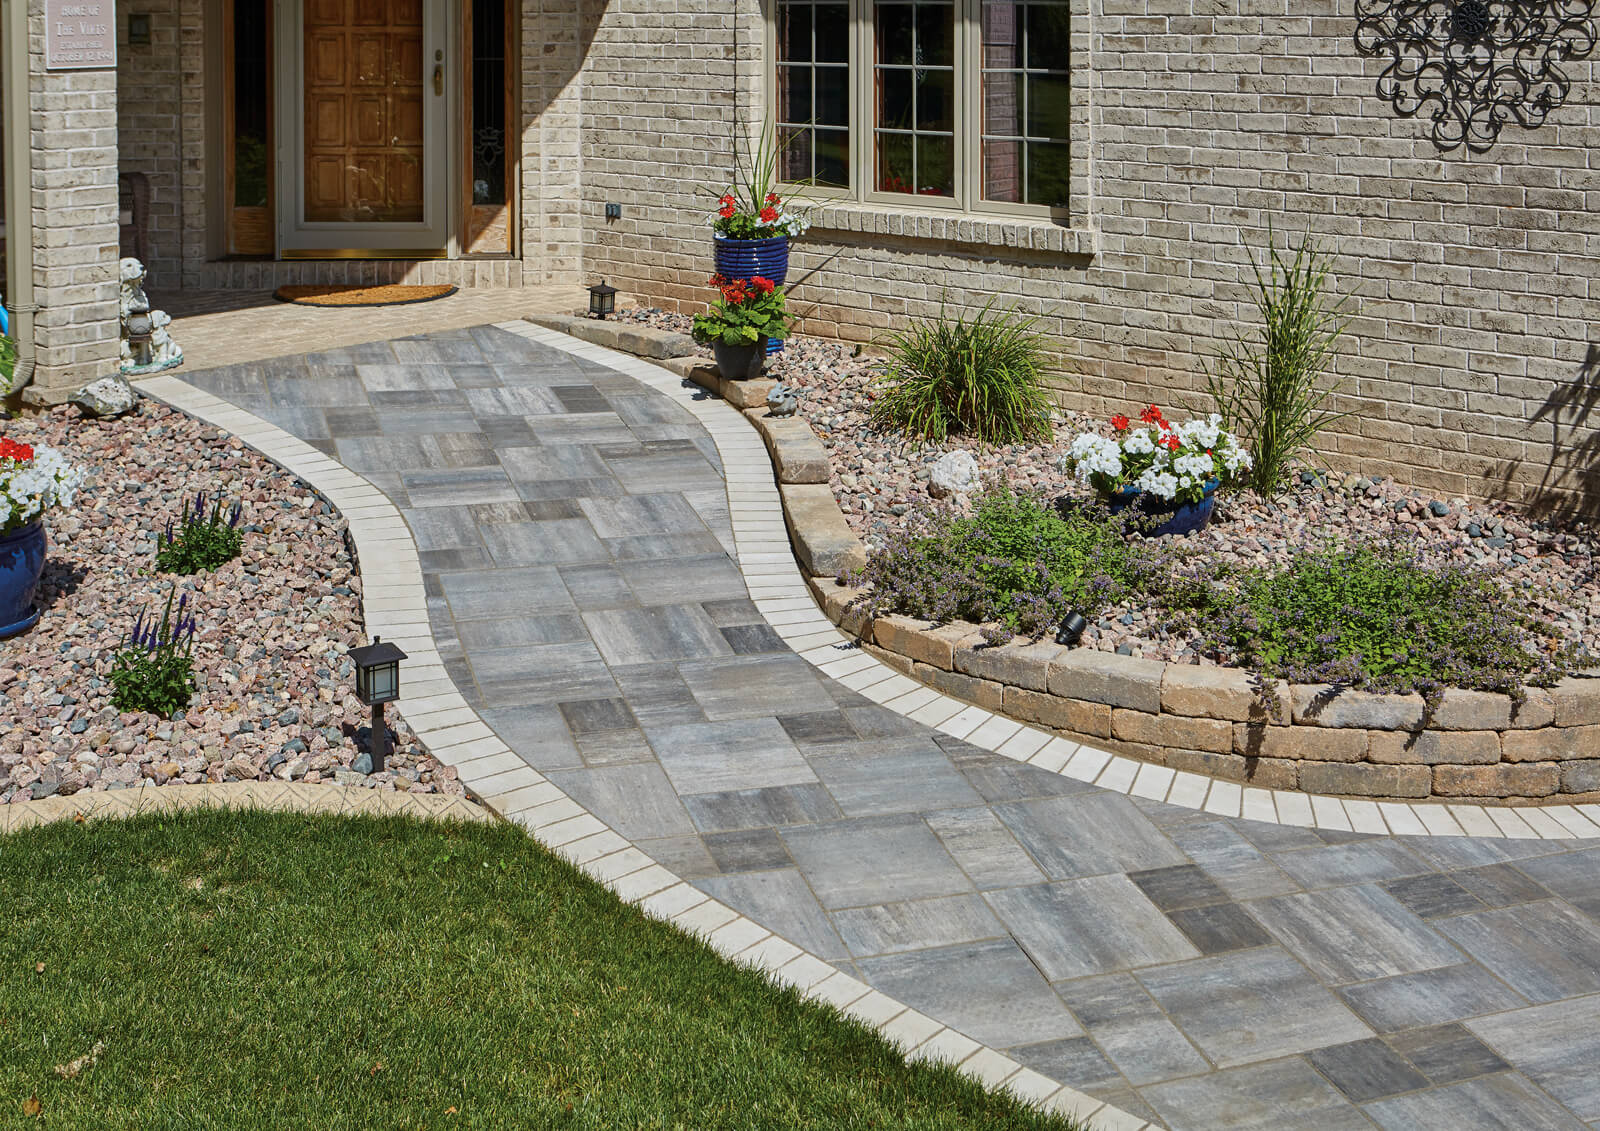 Grand Milestone Pavers Meet Accessibility Needs and Provide Subtle Beauty for Residential Front Yard